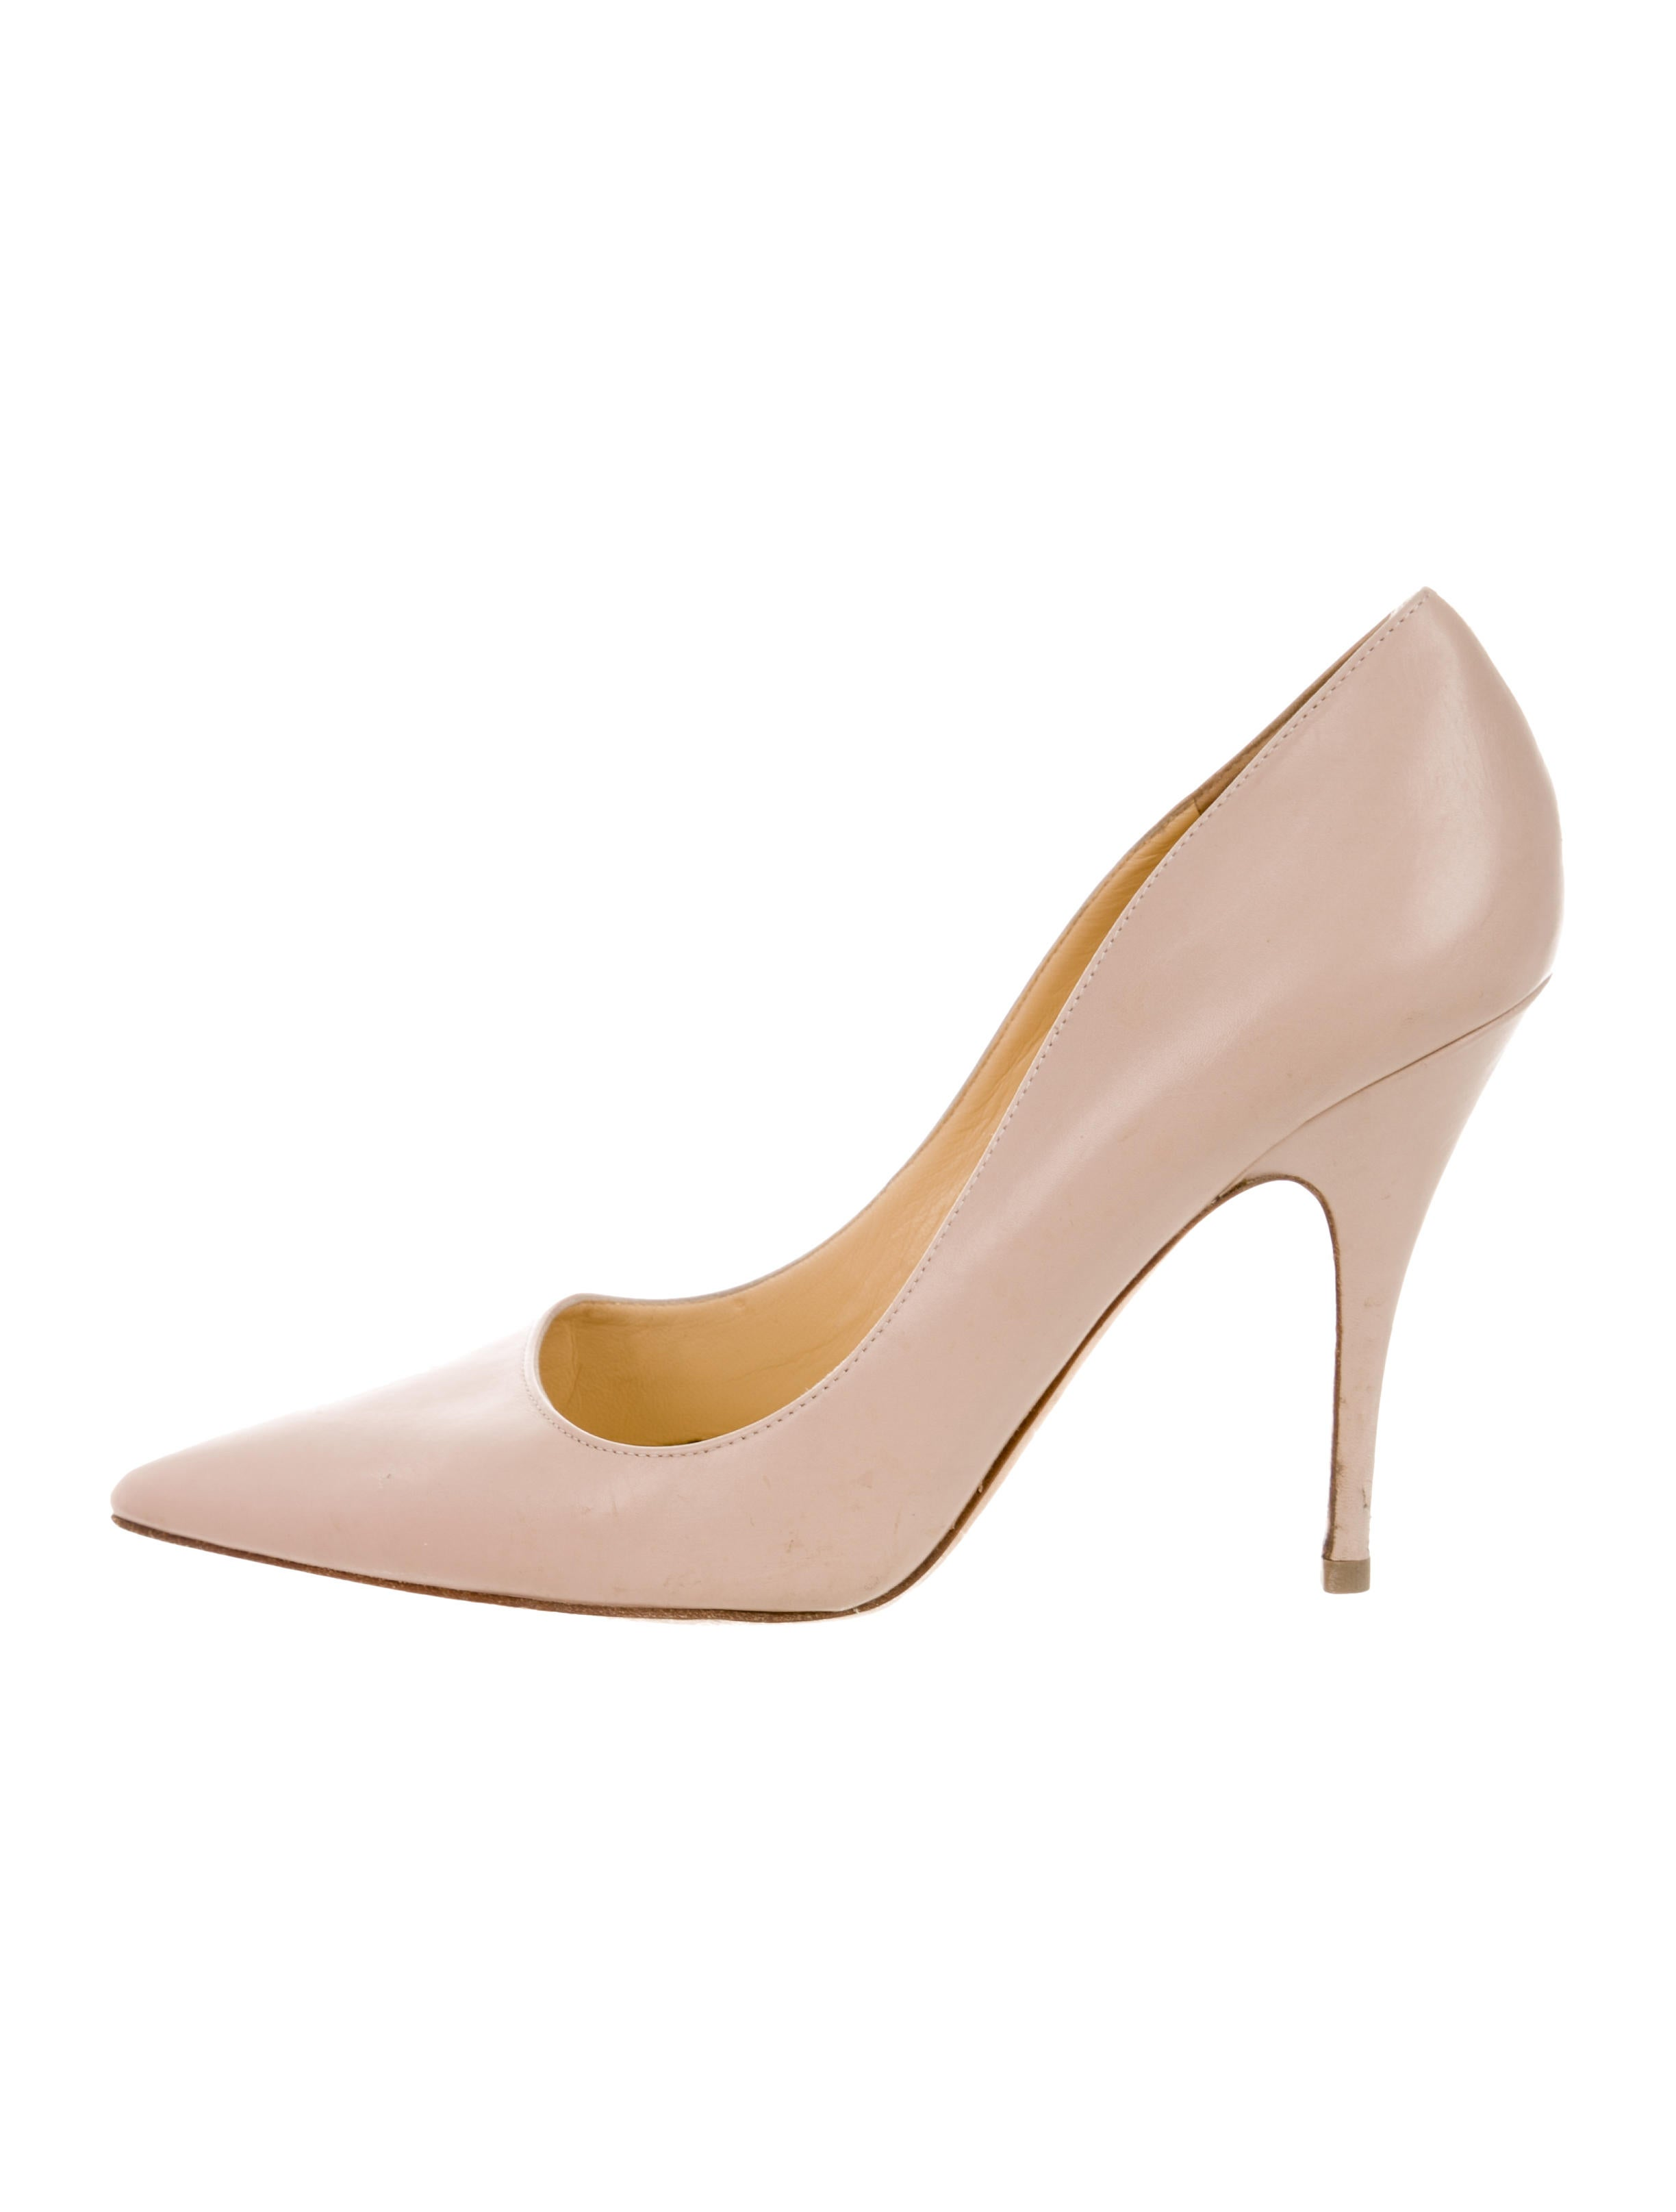 4fe9862b54 Kate Spade New York Licorice Pointed-Toe Pumps - Shoes - WKA115561 ...